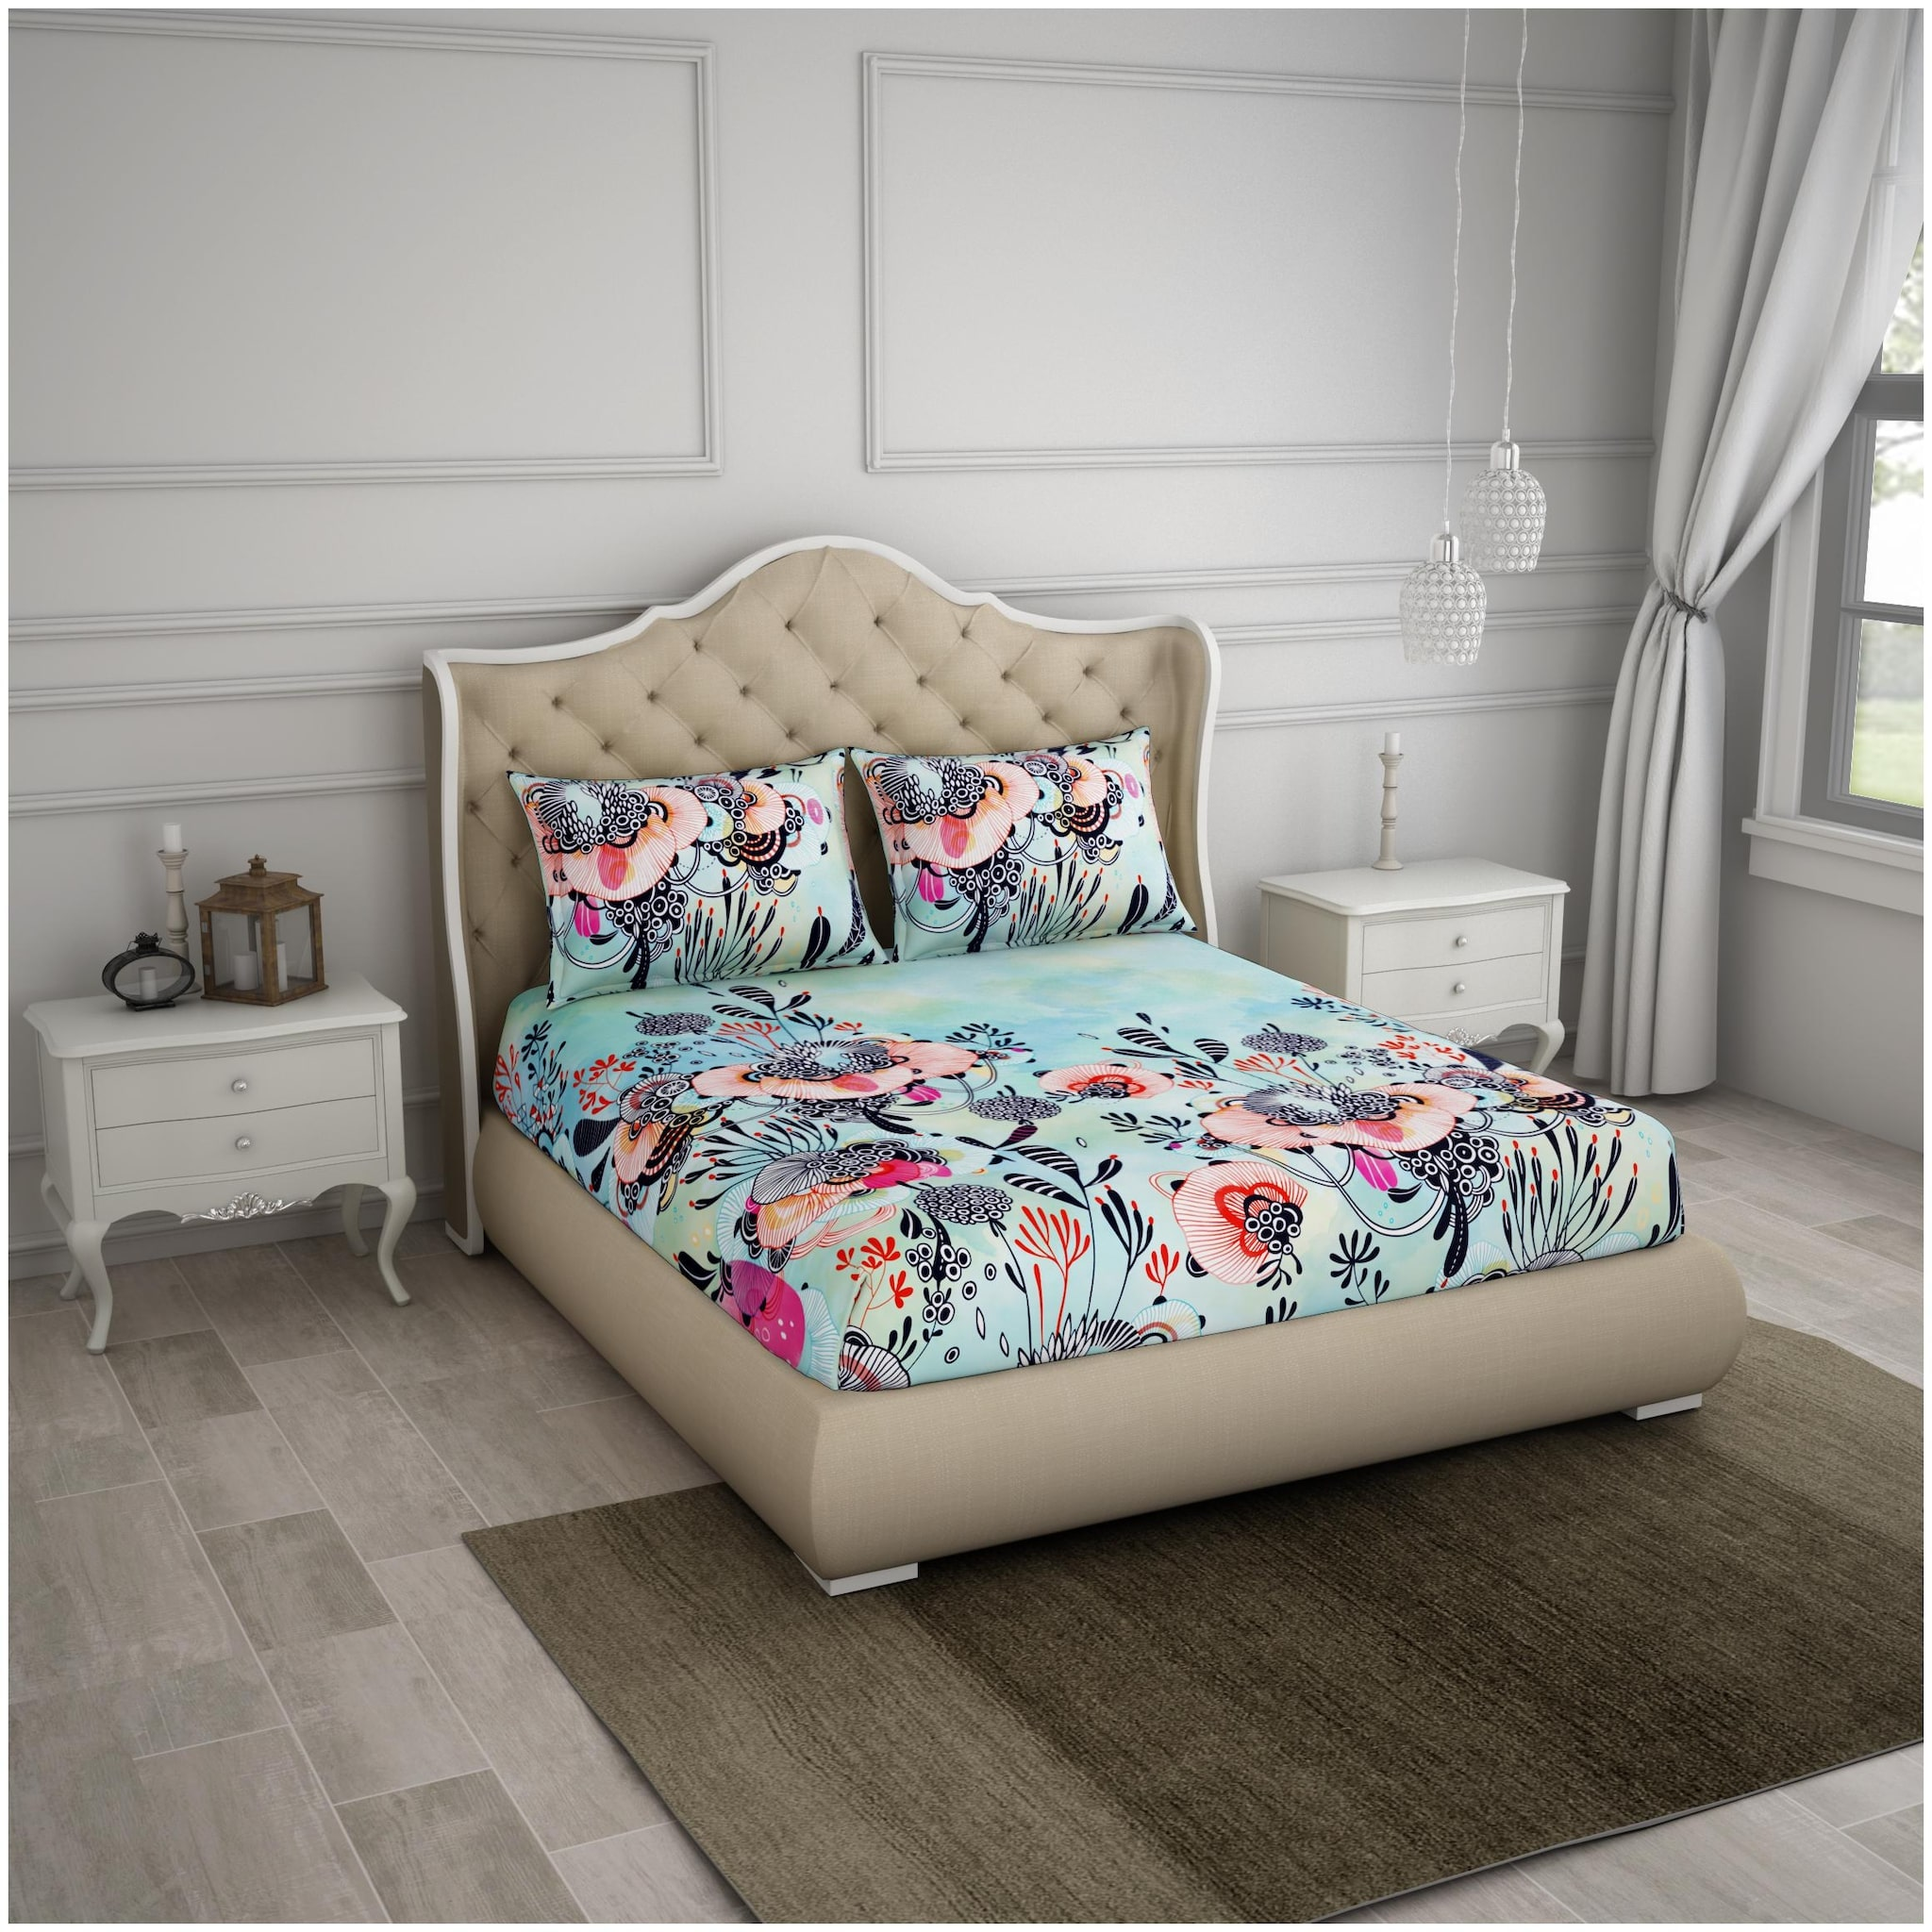 Spaces 1 Large Bed Sheet With 2 Pillow Covers